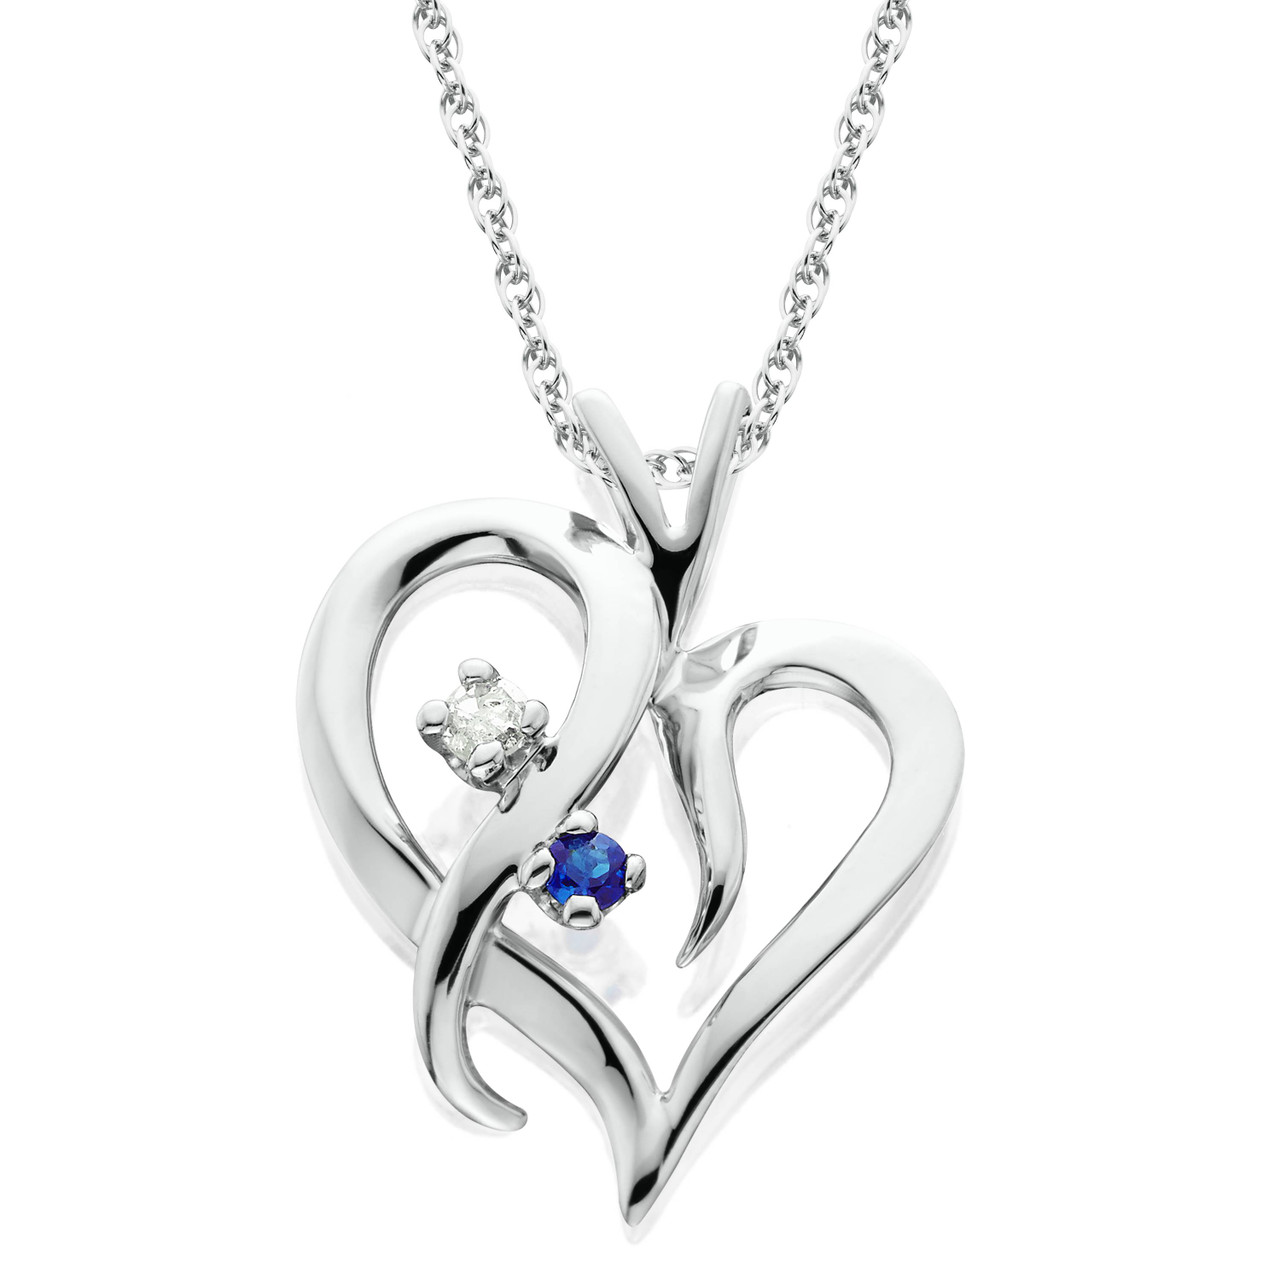 Blue sapphire diamond heart pendant 14 kt white gold with 18 chain blue sapphire diamond heart pendant 14 kt white gold with 18 chain gh i2 aloadofball Images